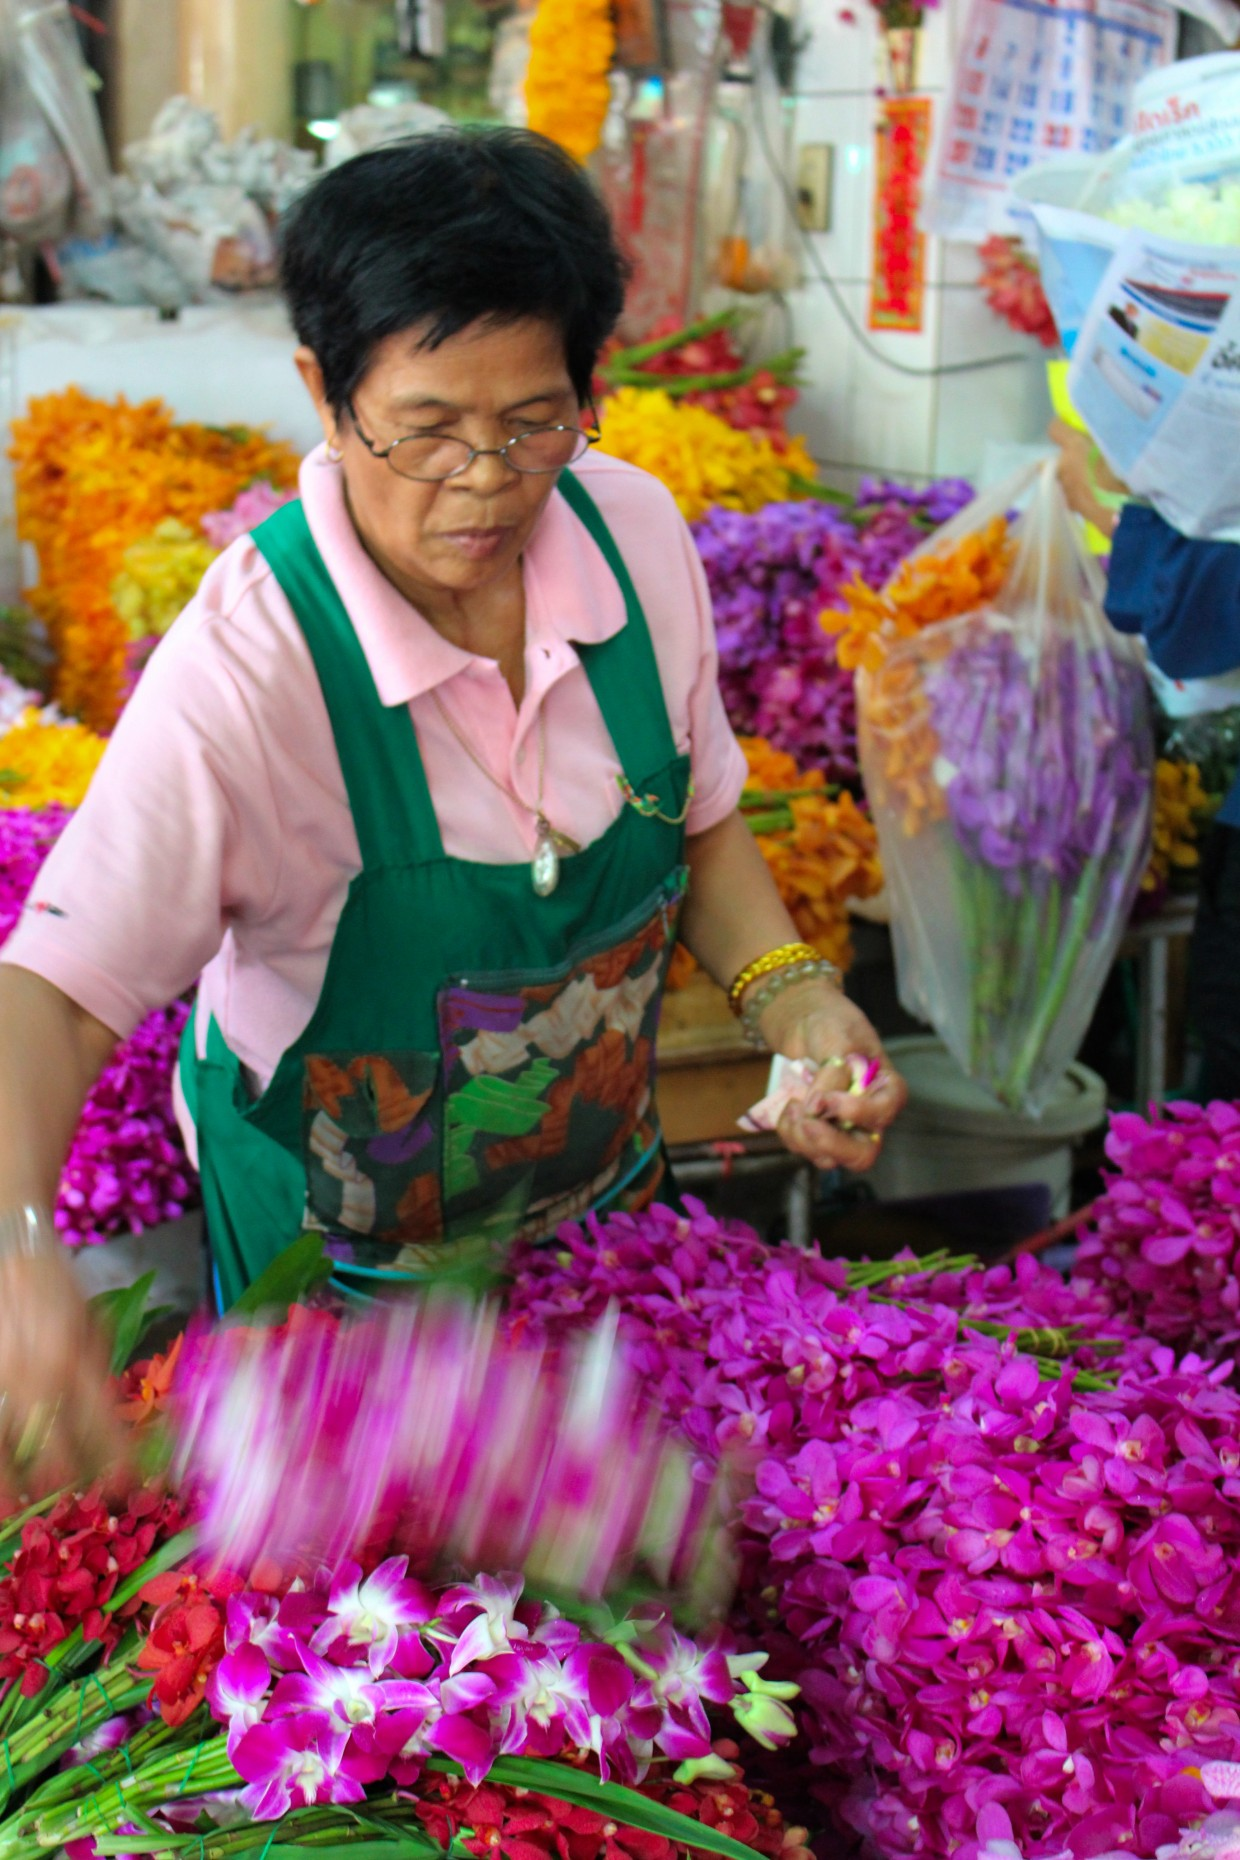 Stall at the flower market